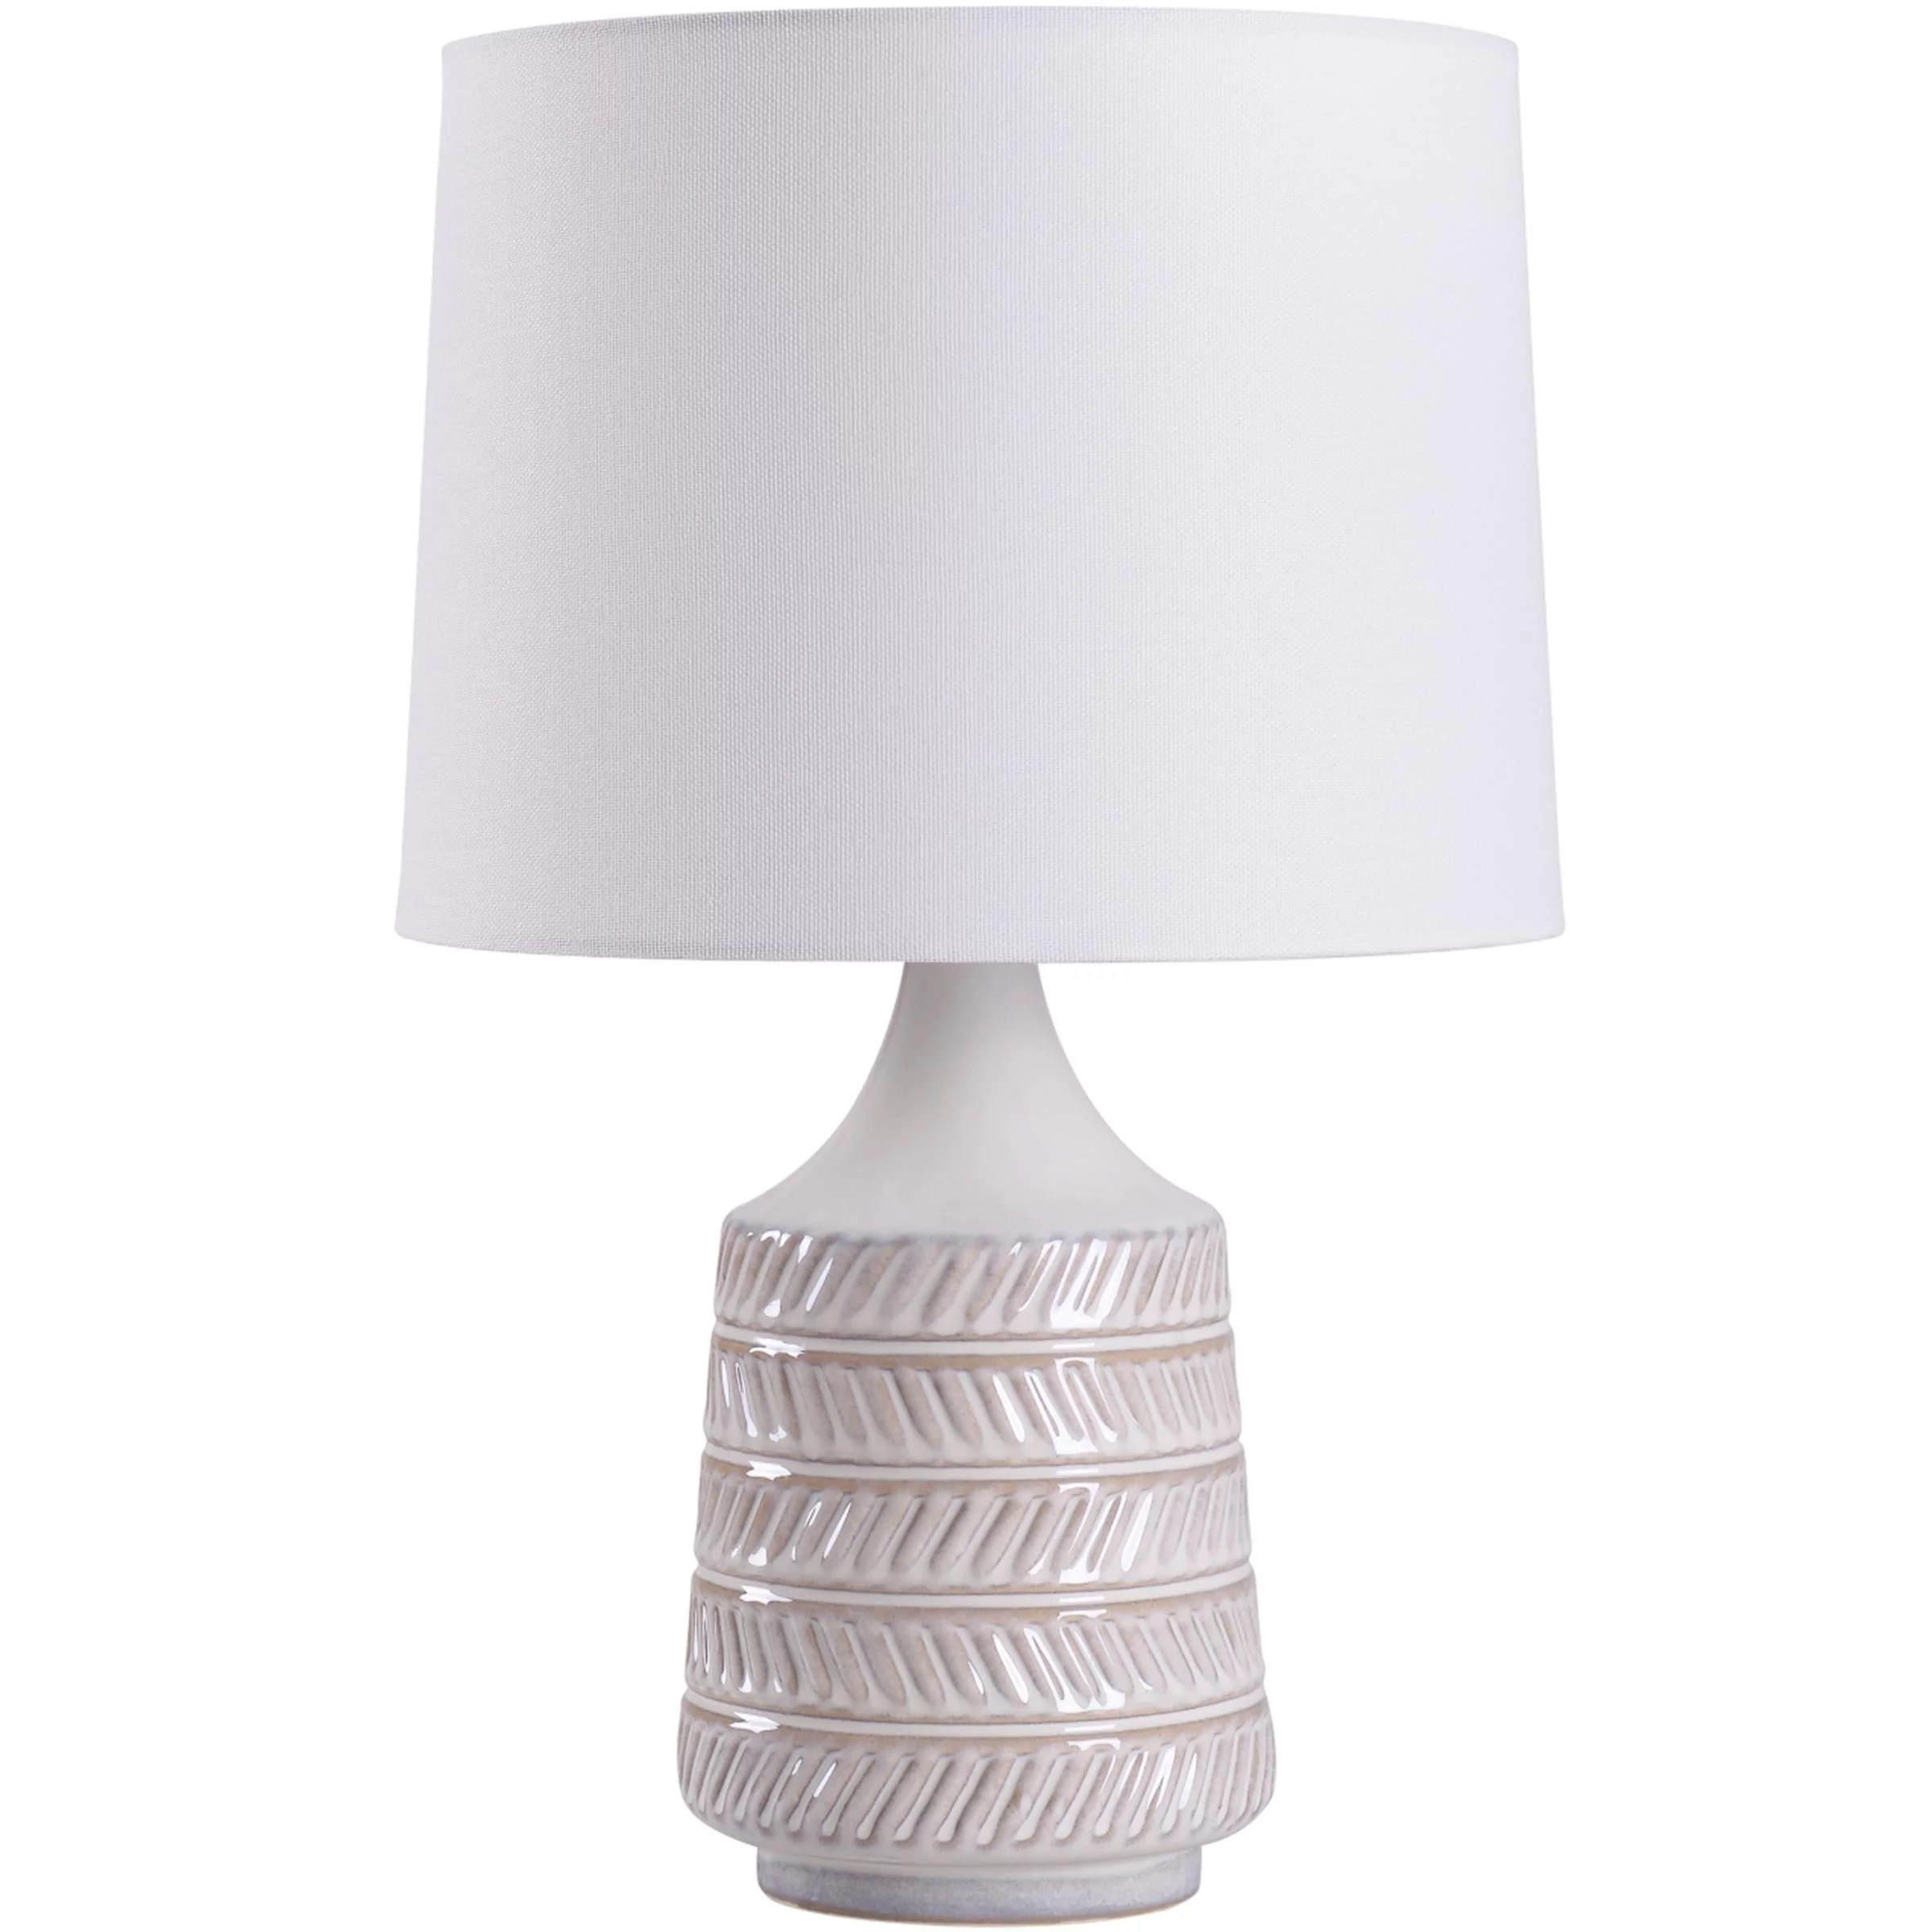 mainstays white beige ceramic table lamp with shade 17 h